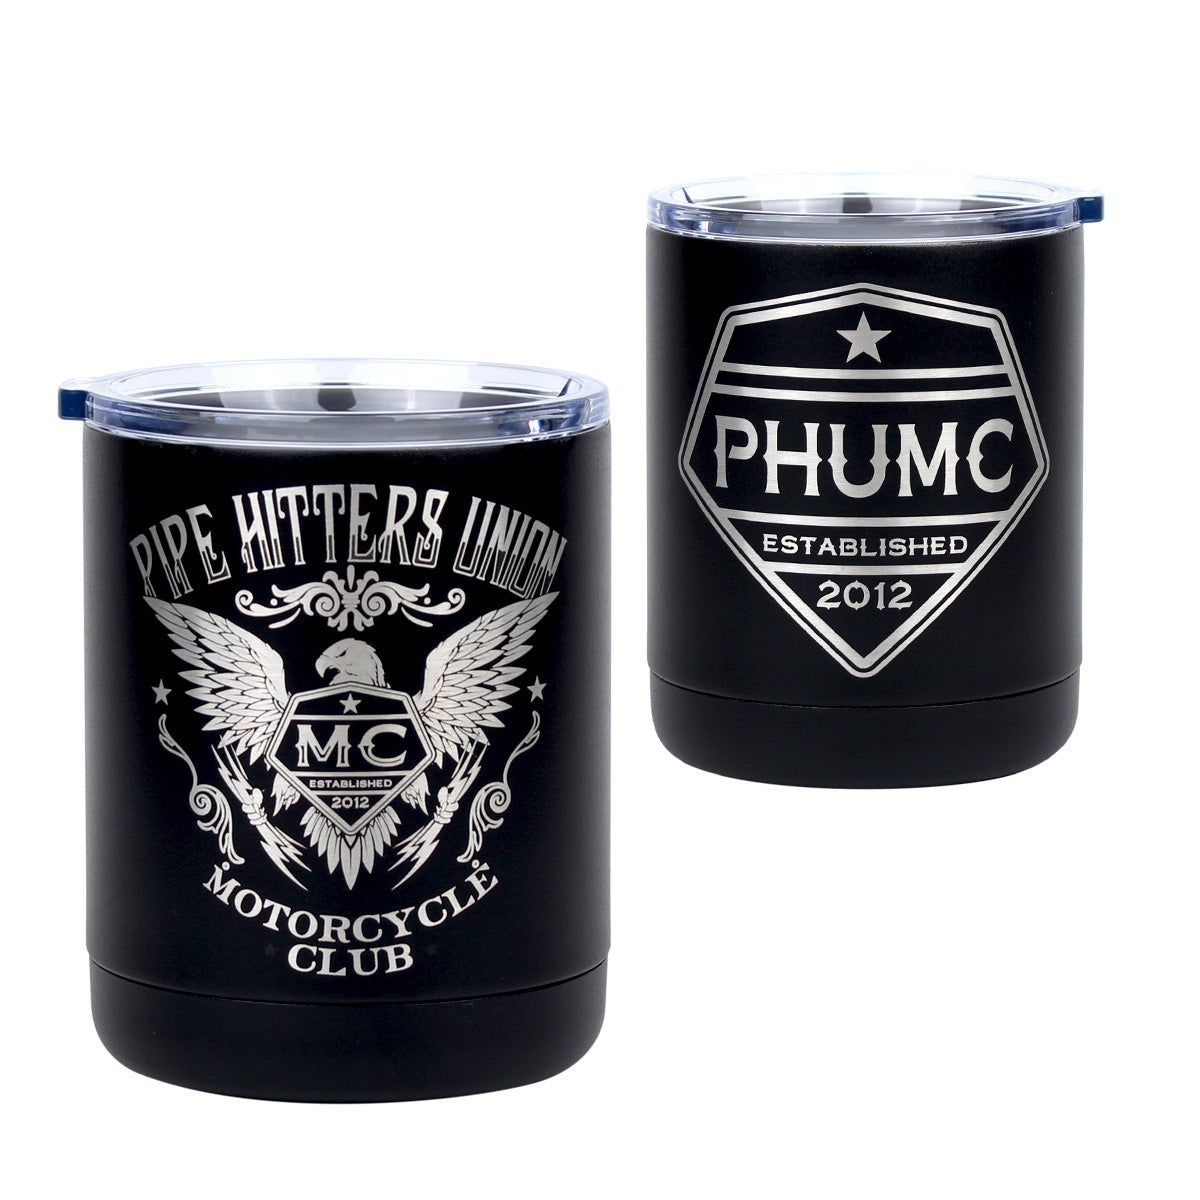 PHUMC Eagle - 10oz Lowball (PHUMC) - Pipe Hitters Union